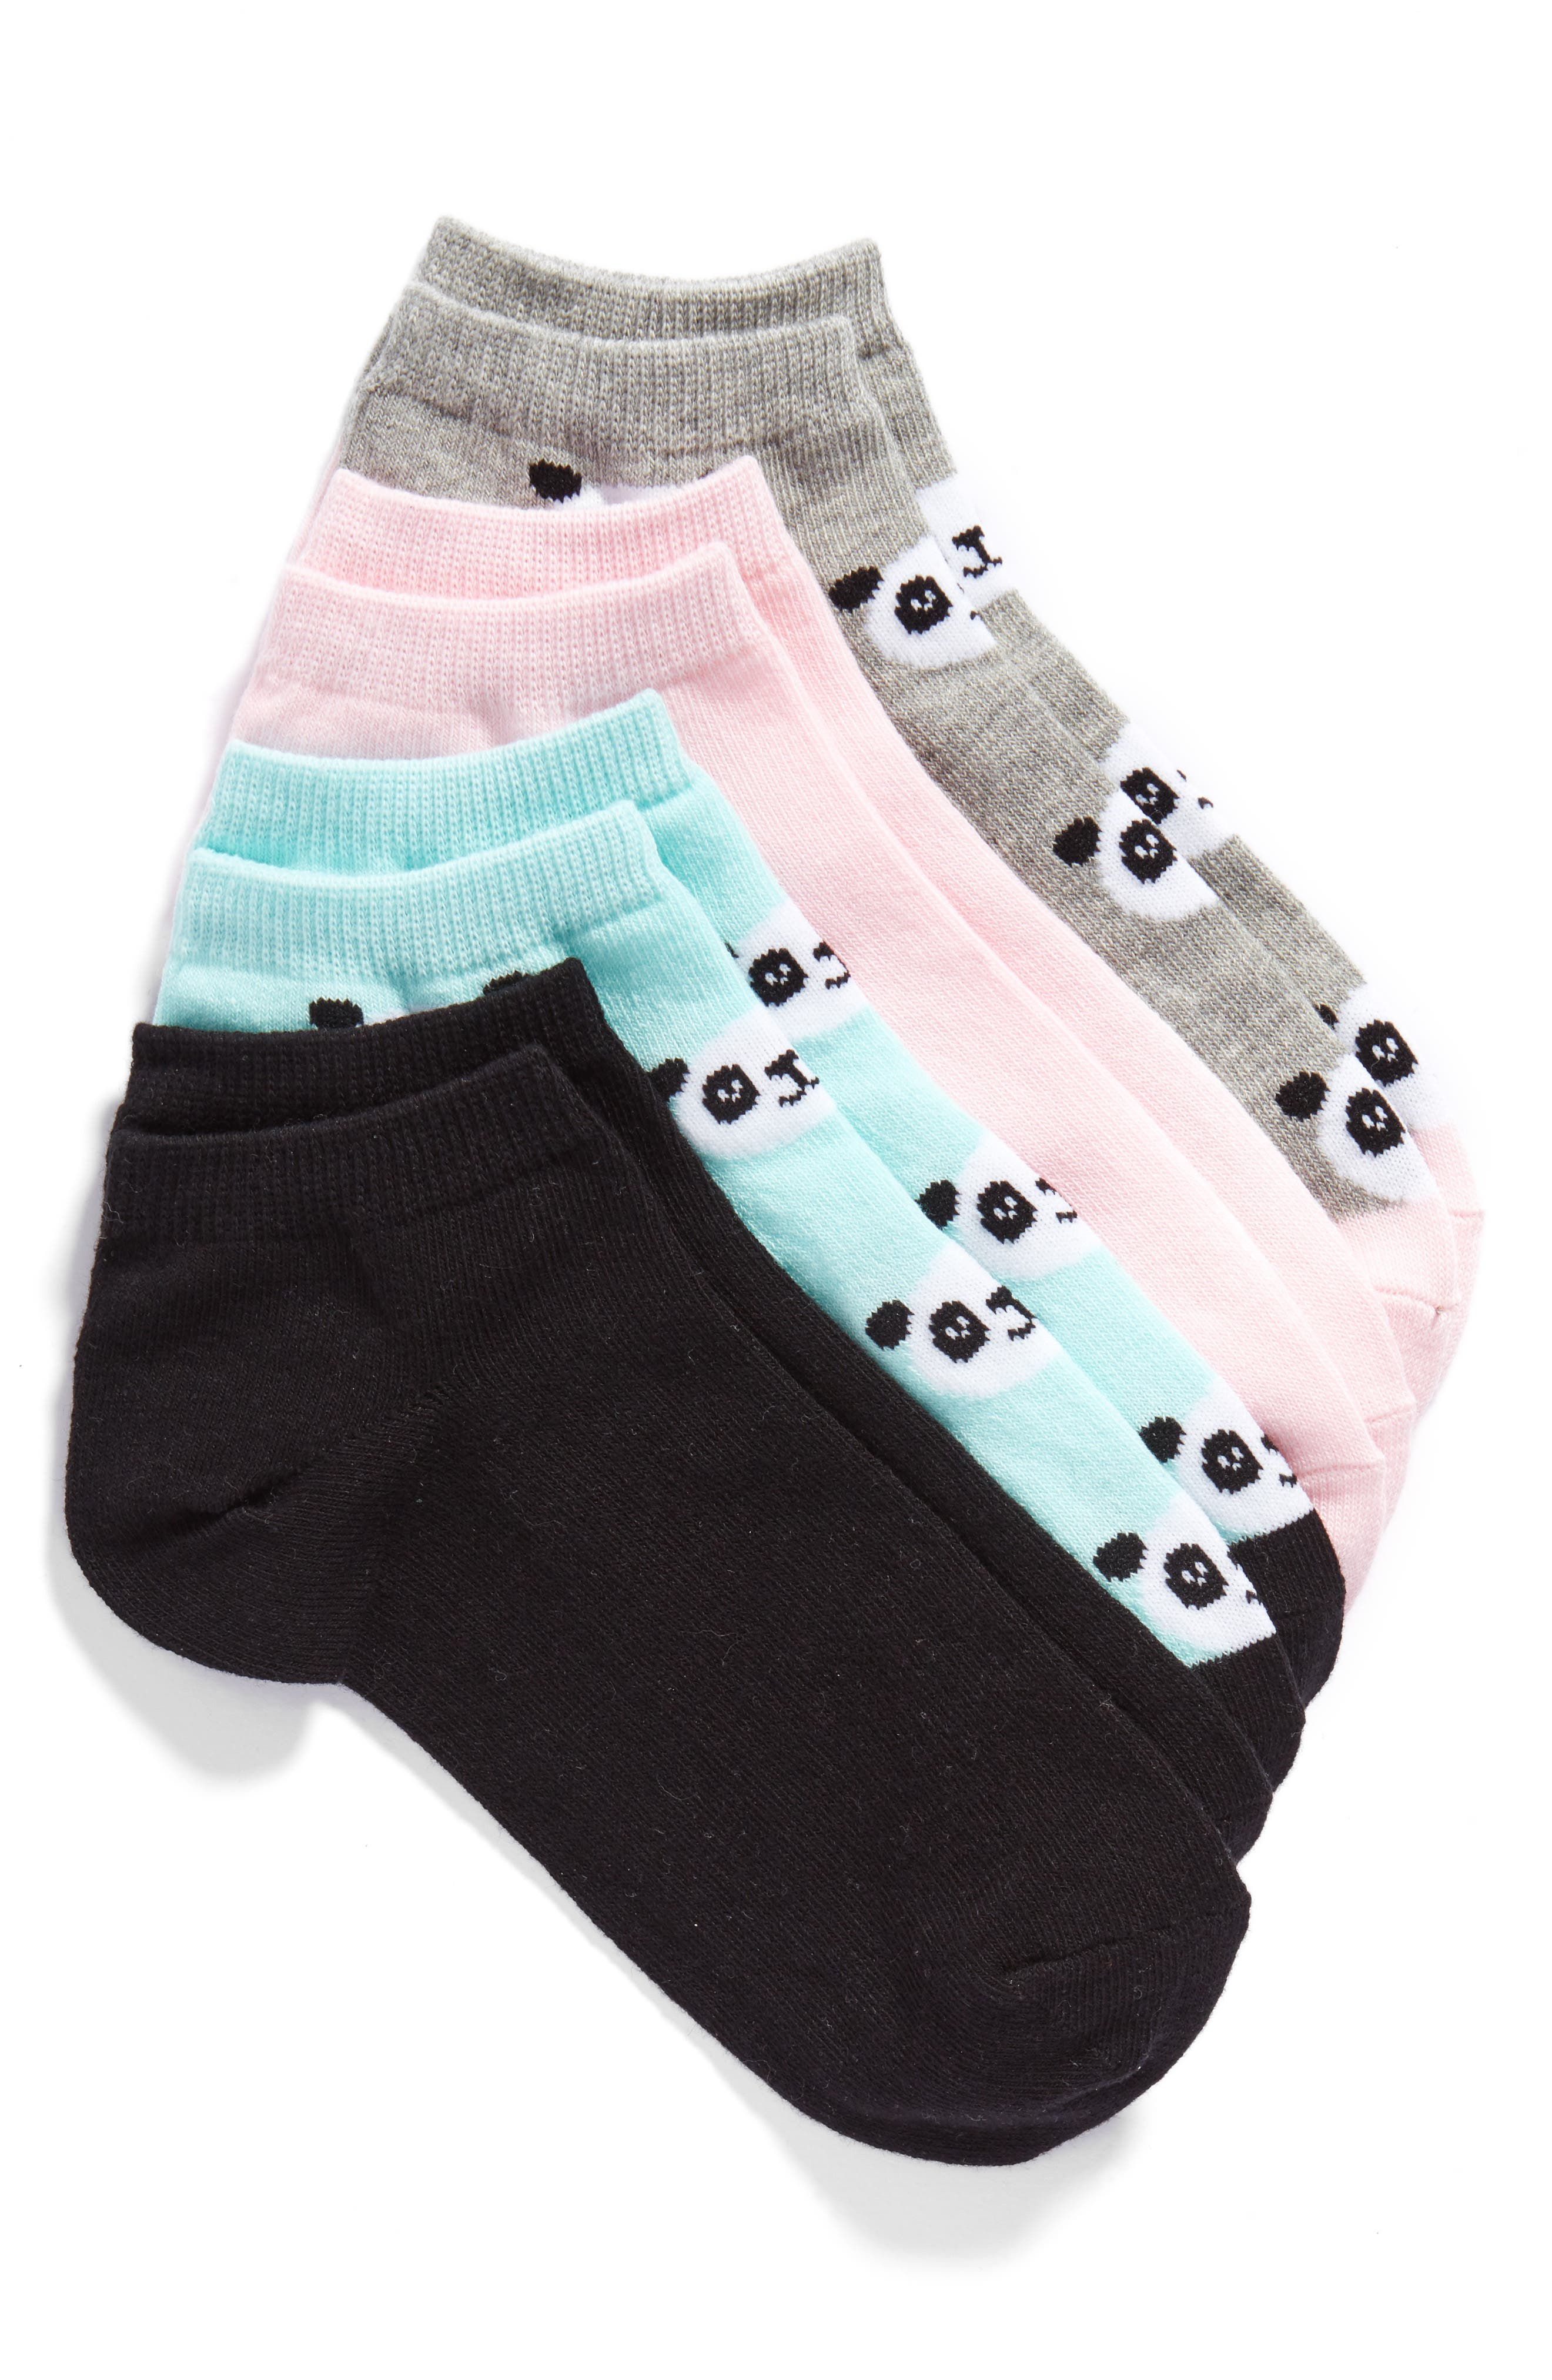 Panda Face 4-Pack Ankle Socks,                             Main thumbnail 1, color,                             060